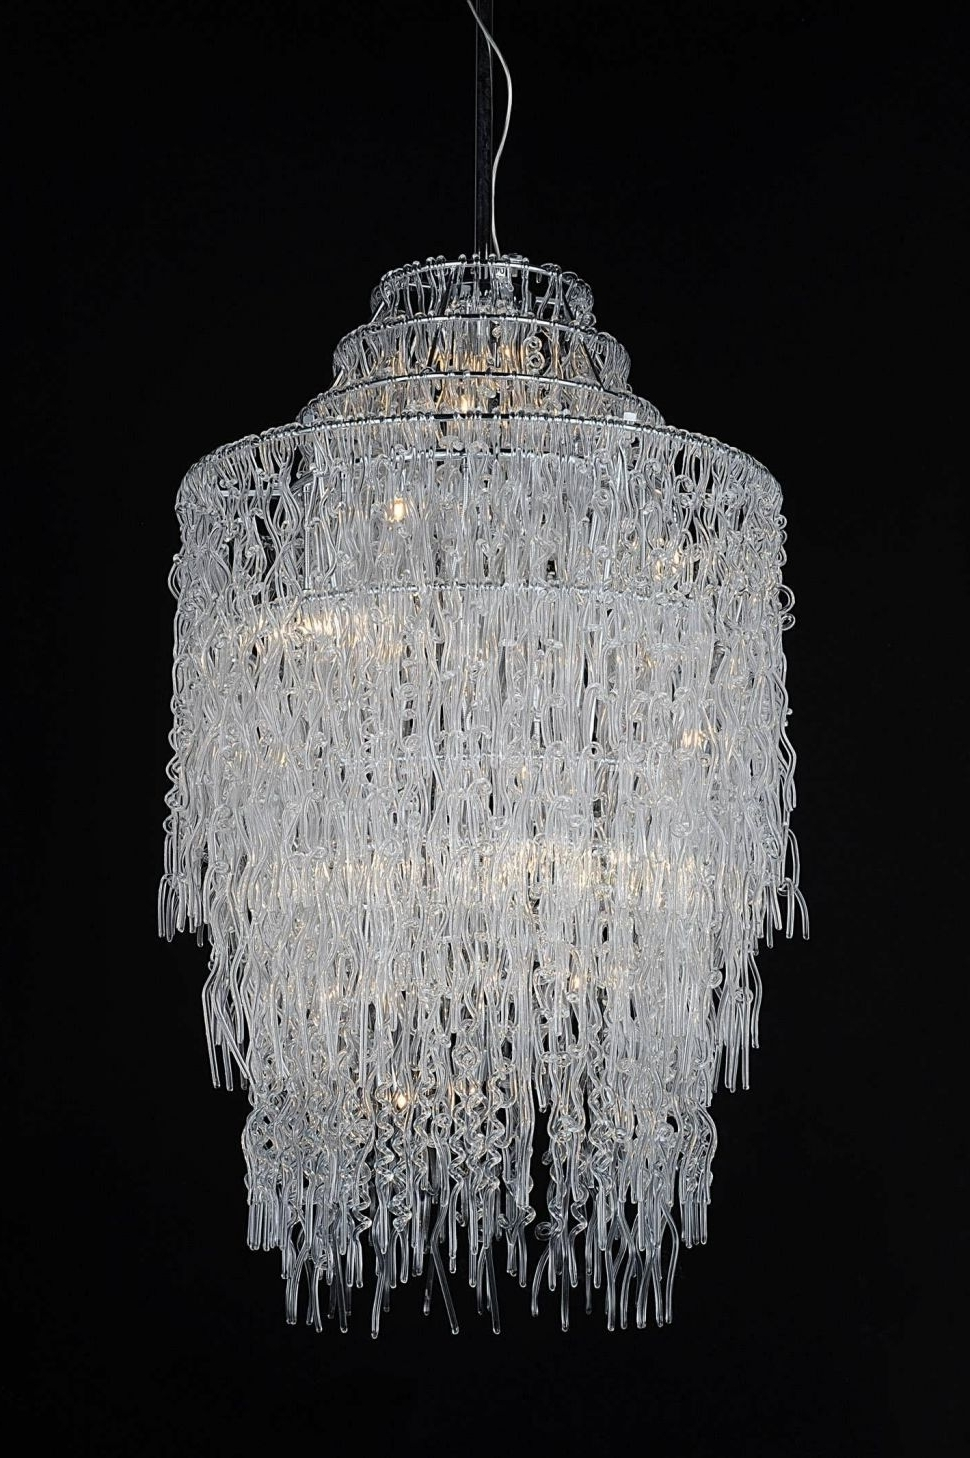 Chandeliers : Traditional Chandeliers Beautiful Chandelier Throughout Well Known Traditional Chandeliers (View 7 of 20)